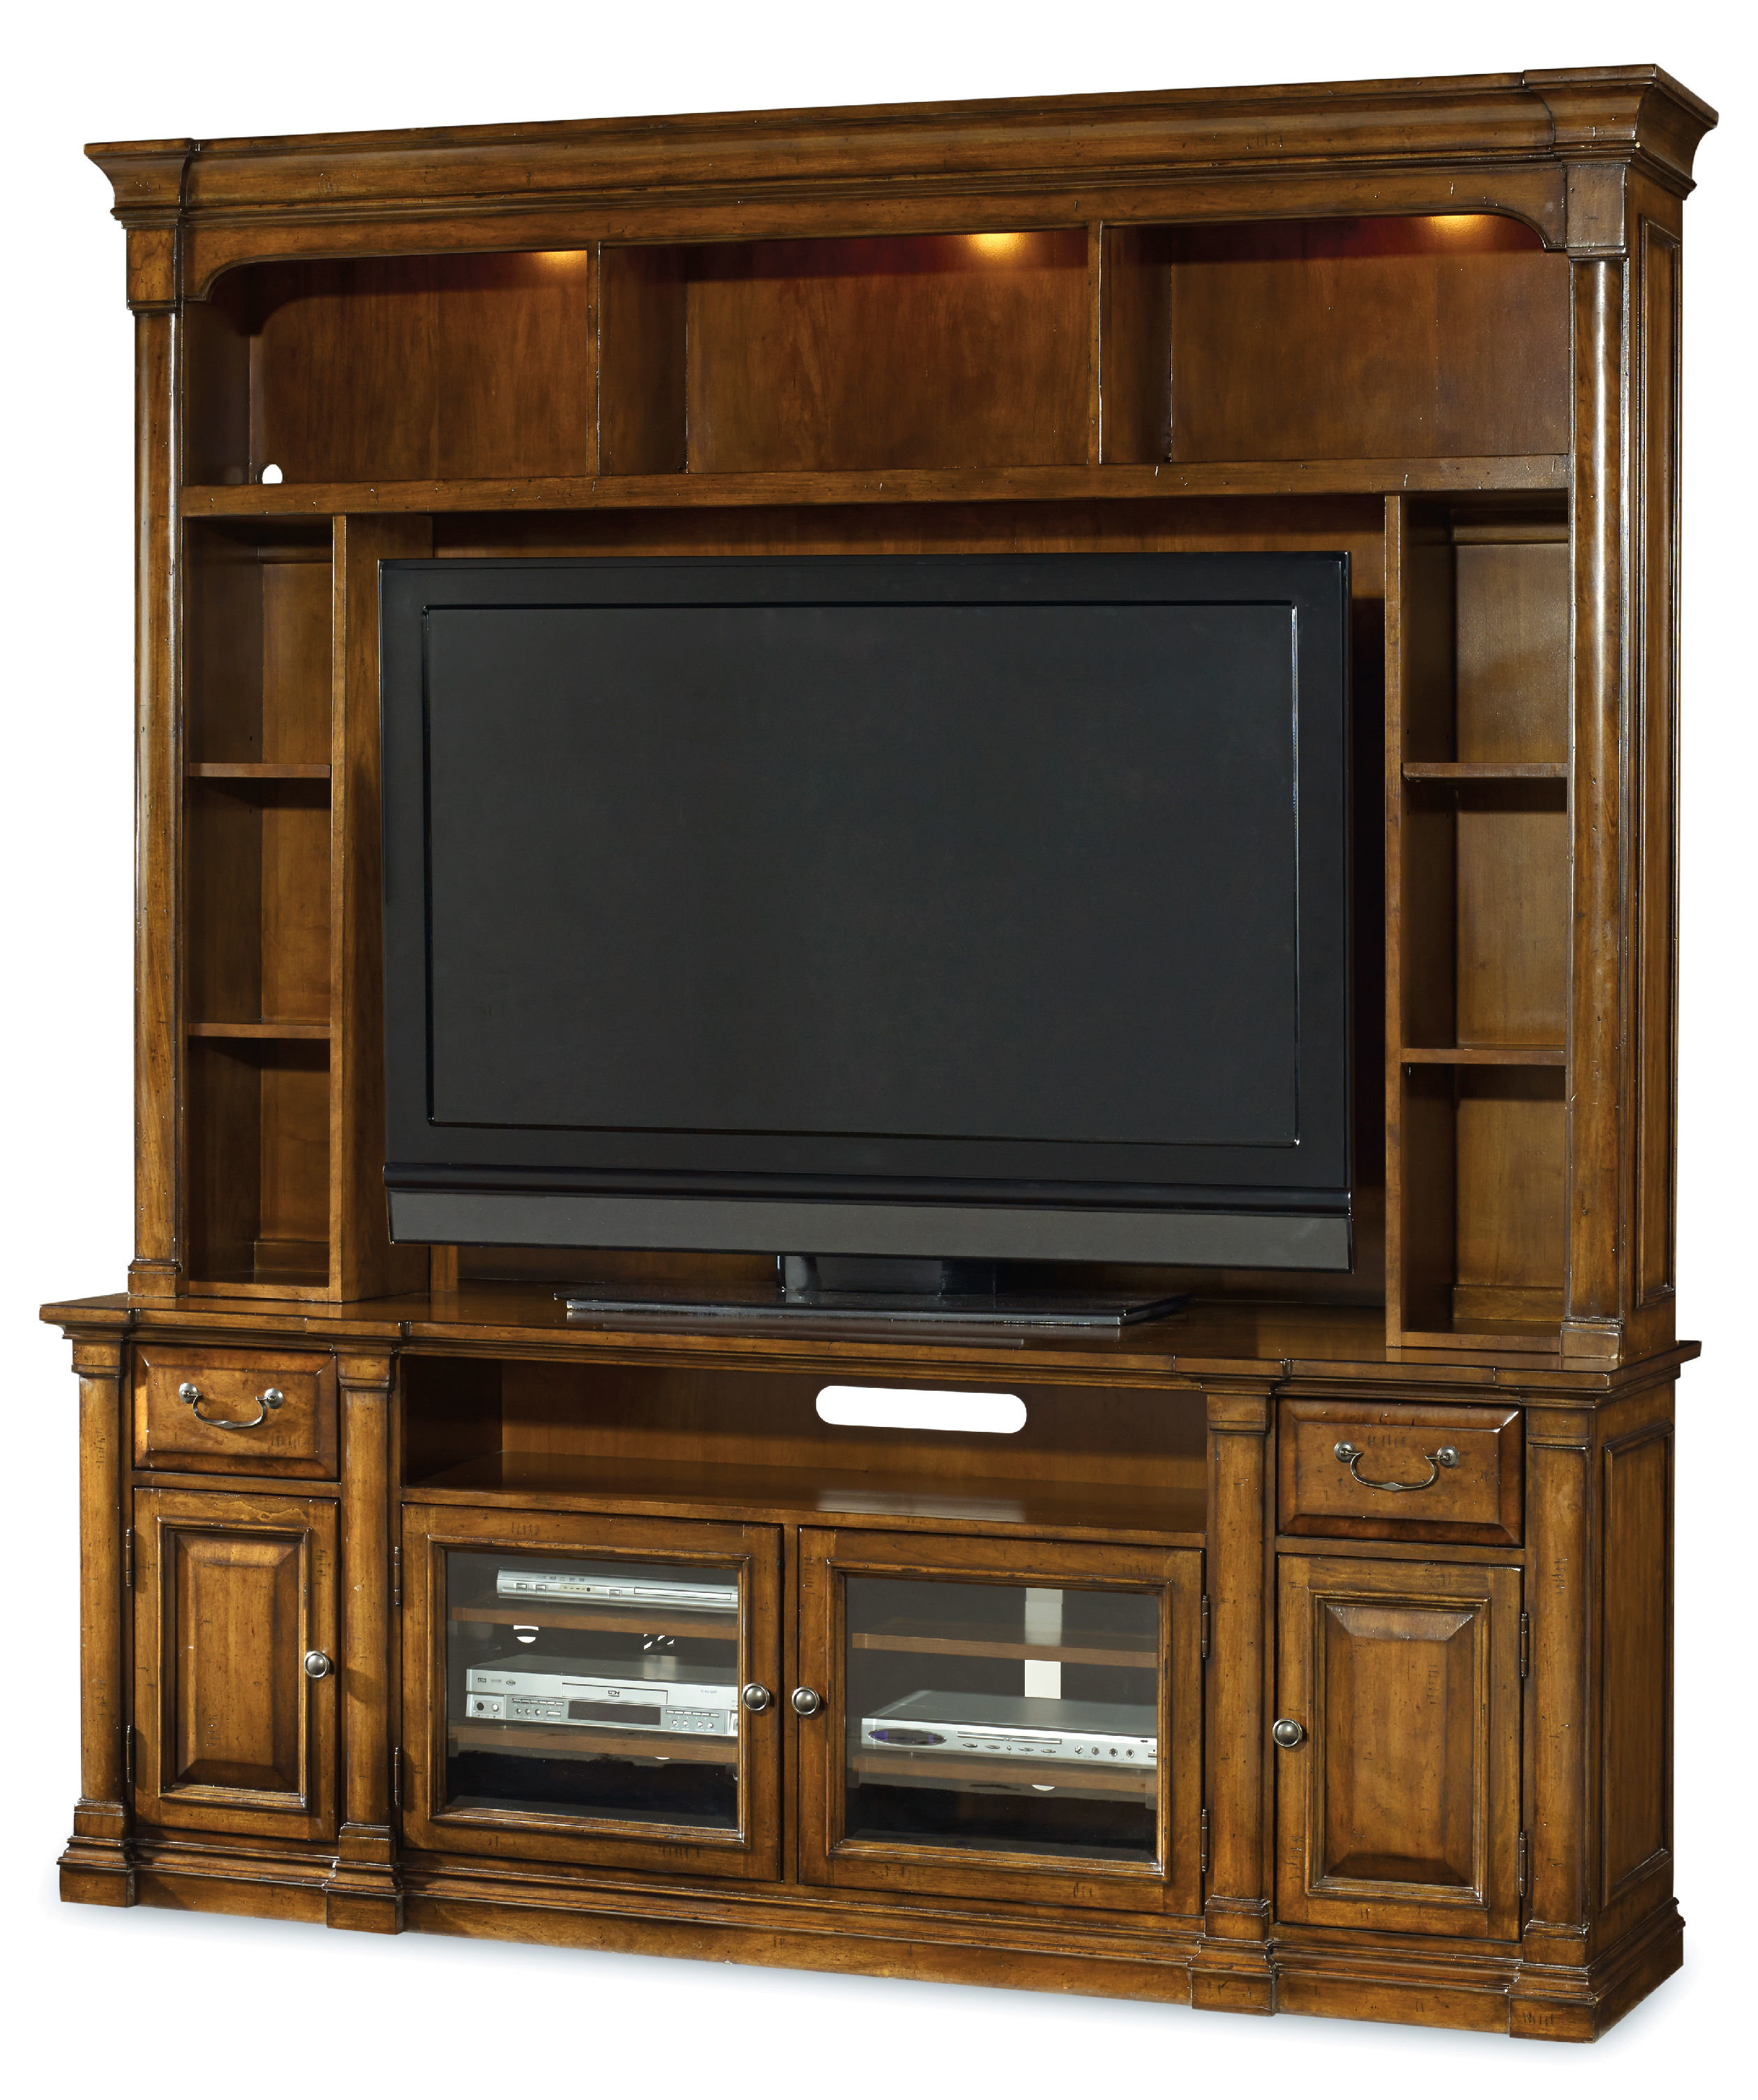 70 Inch Tv Stands | Joss & Main With Regard To Bale Rustic Grey 82 Inch Tv Stands (View 15 of 20)